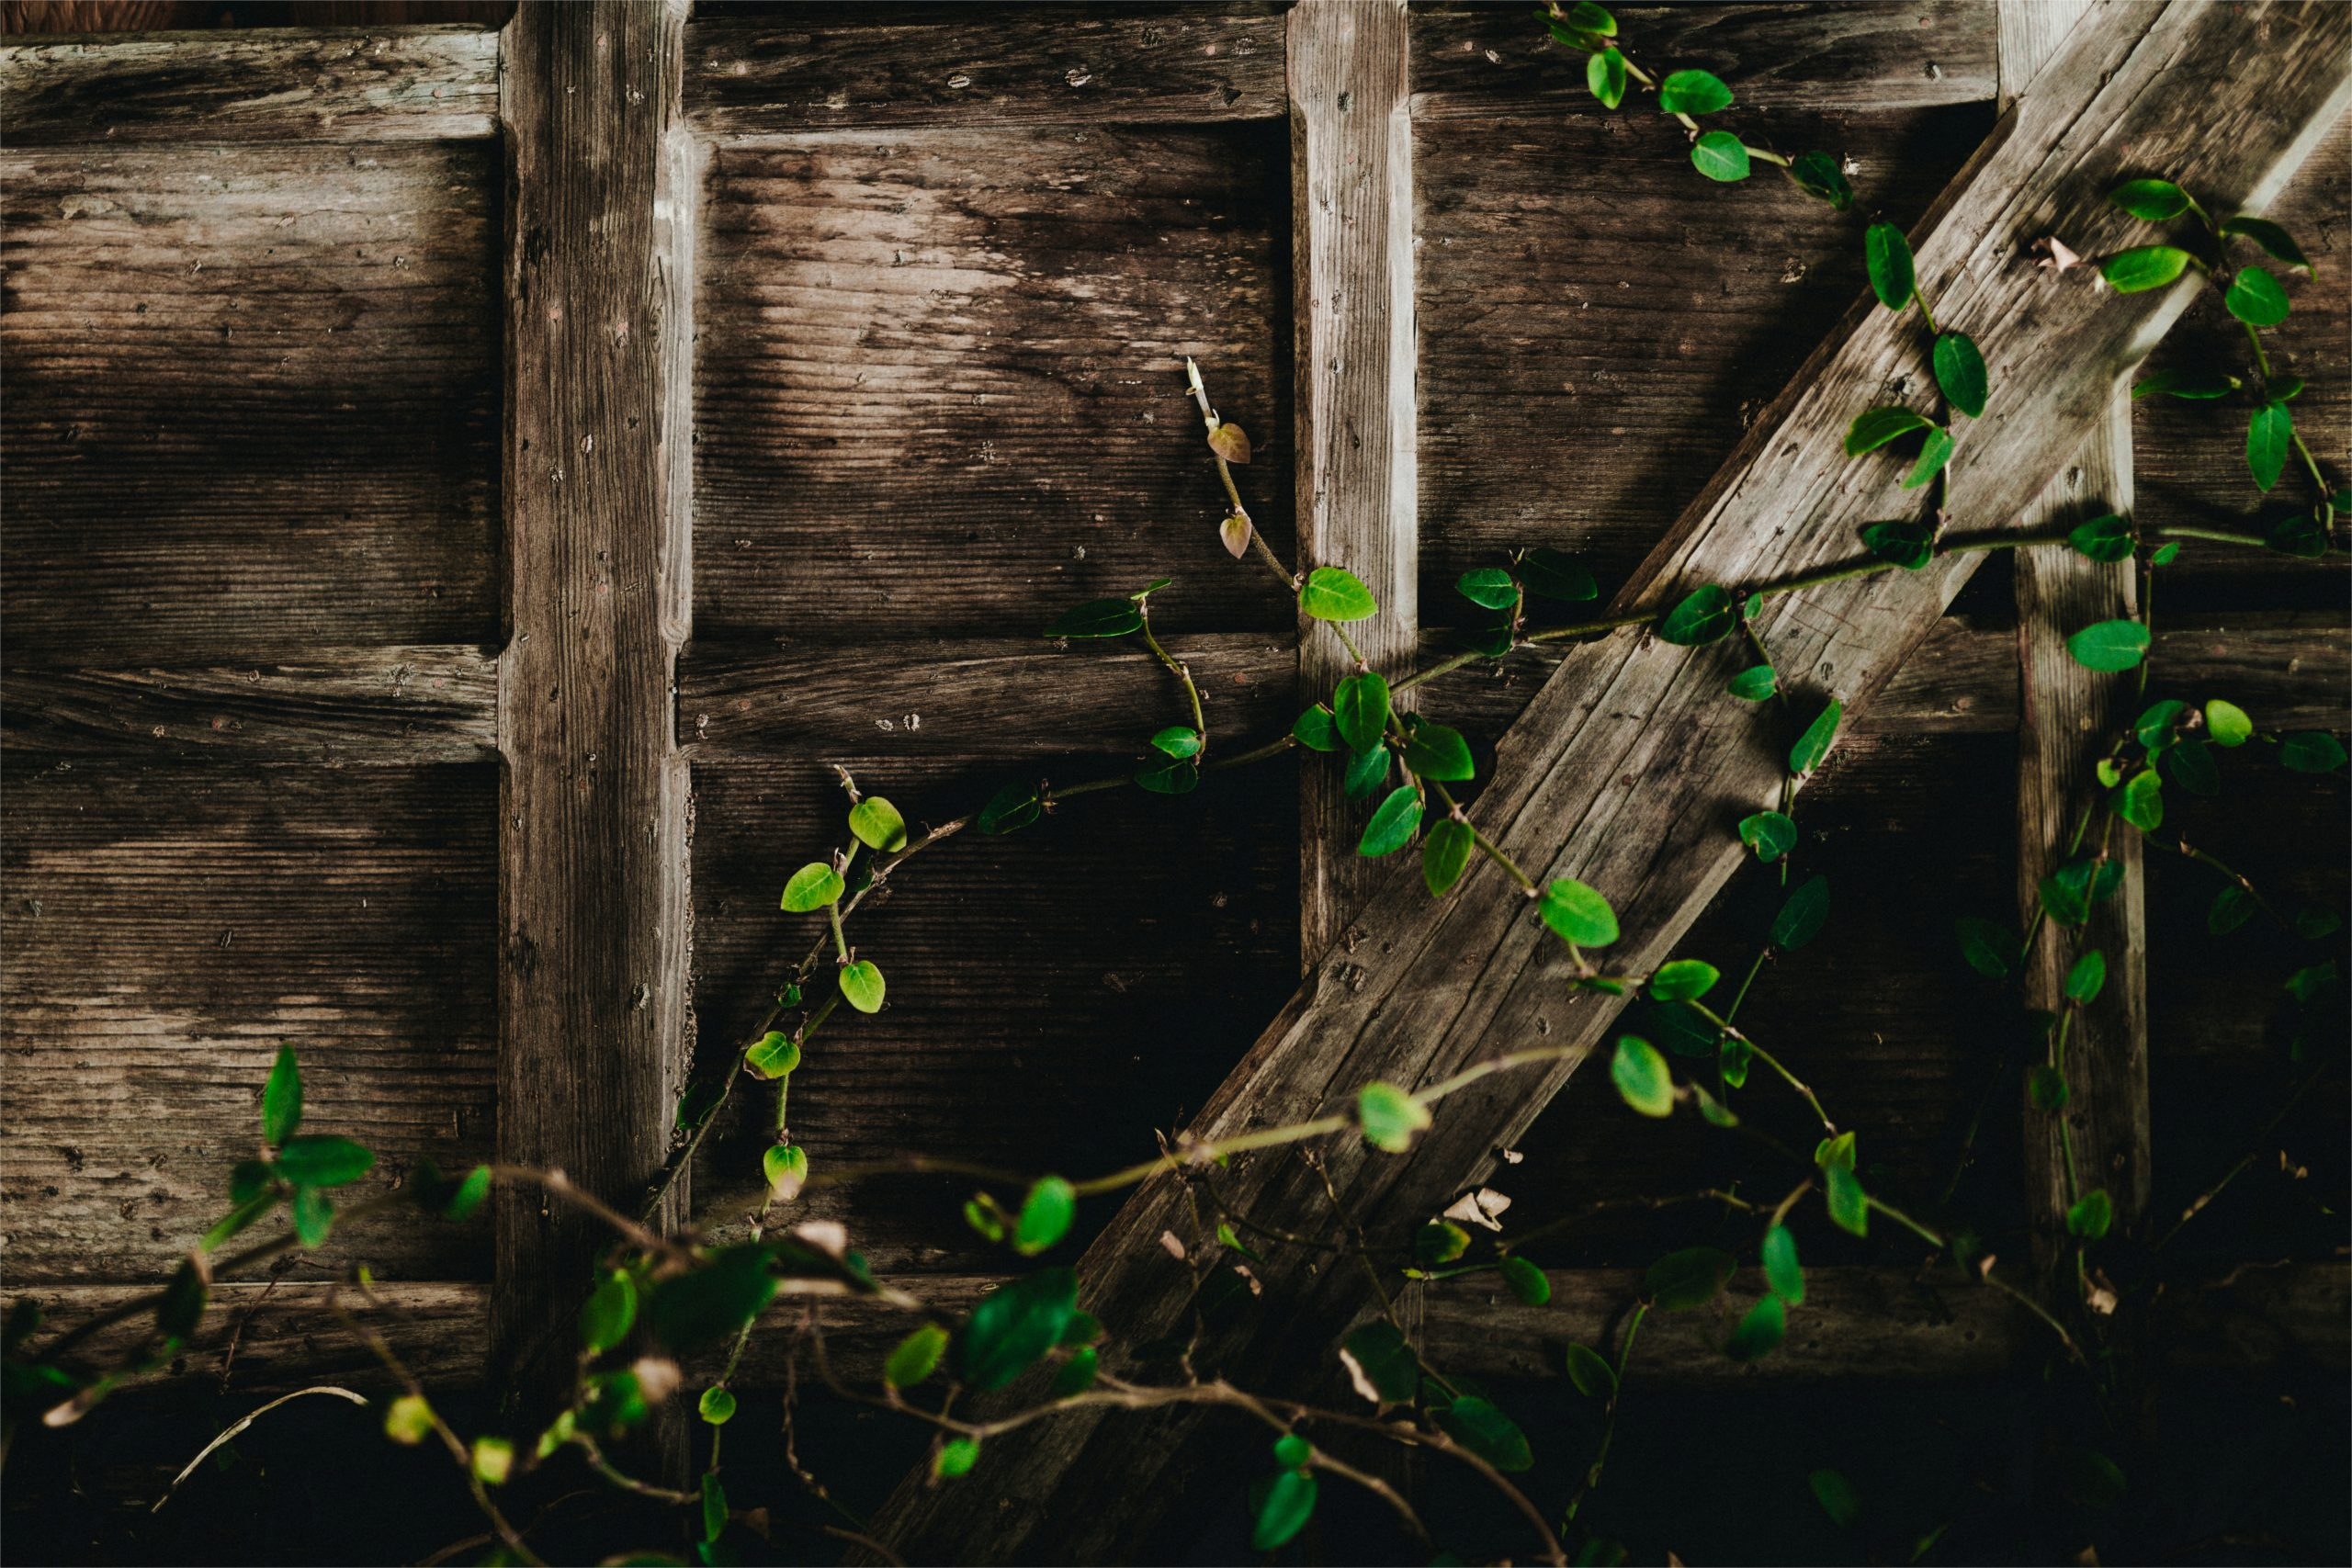 A trellis with green vines climbing up it